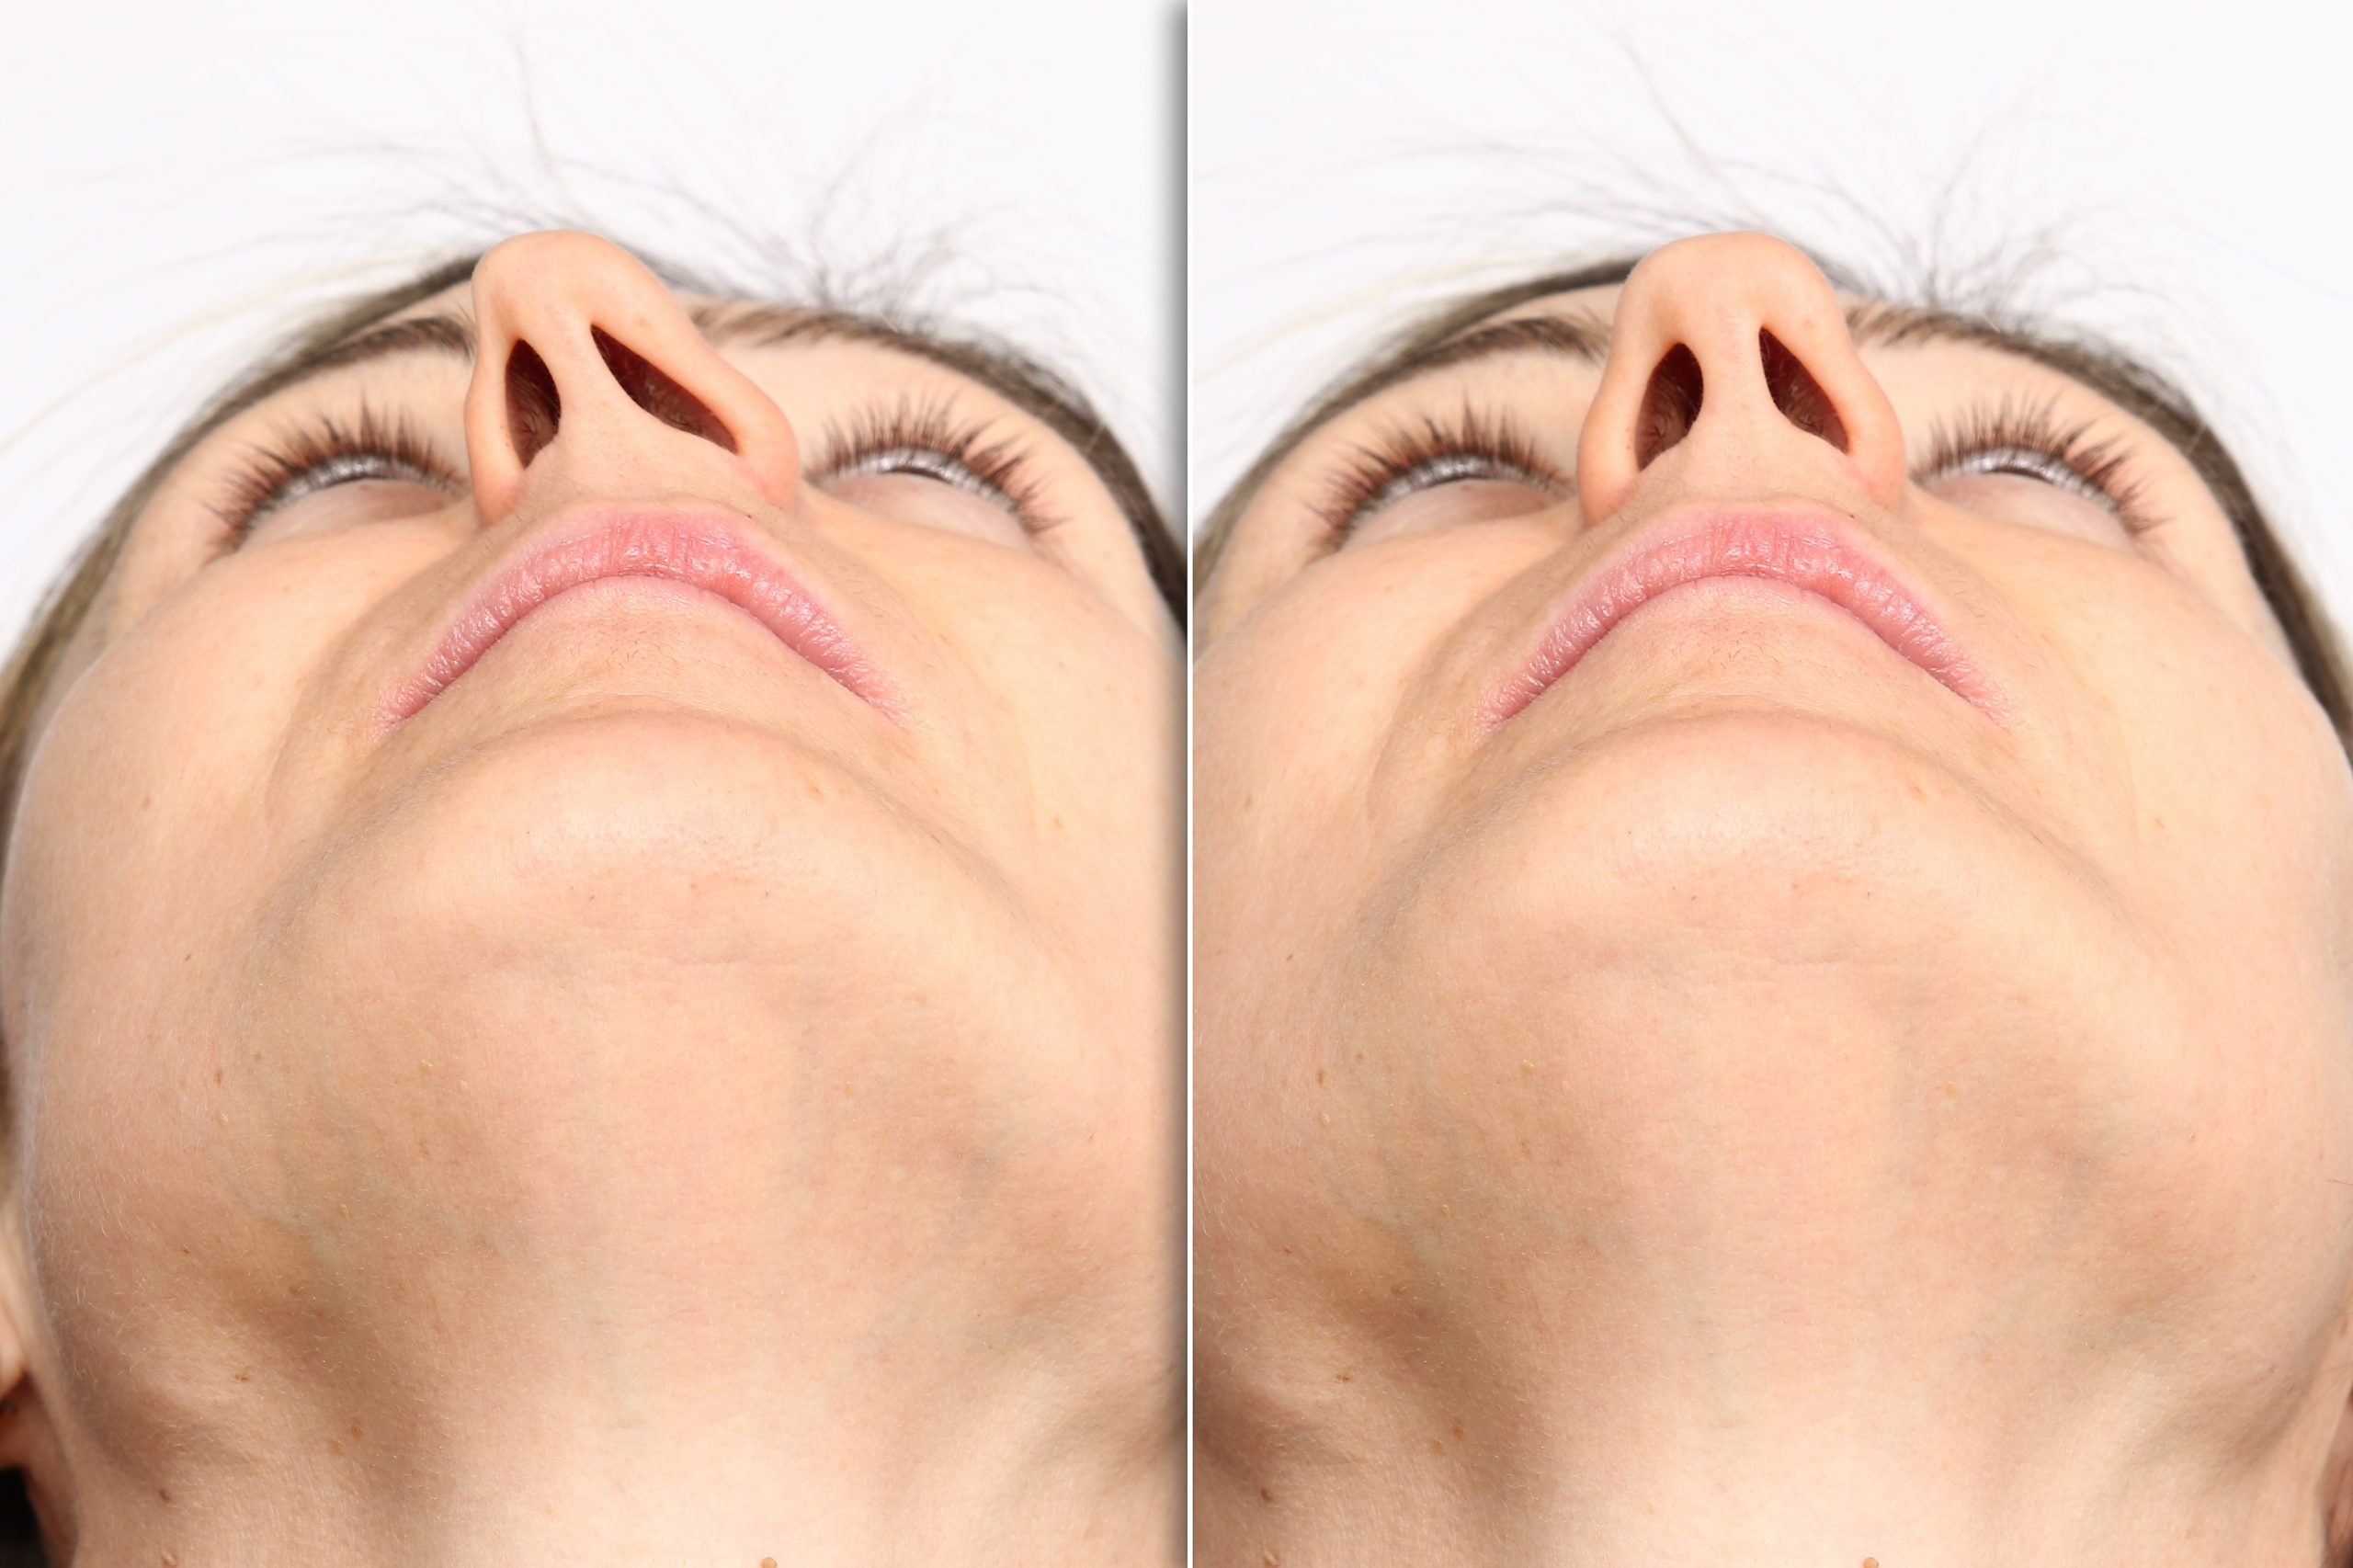 Woman with deviated septum and corrected septum